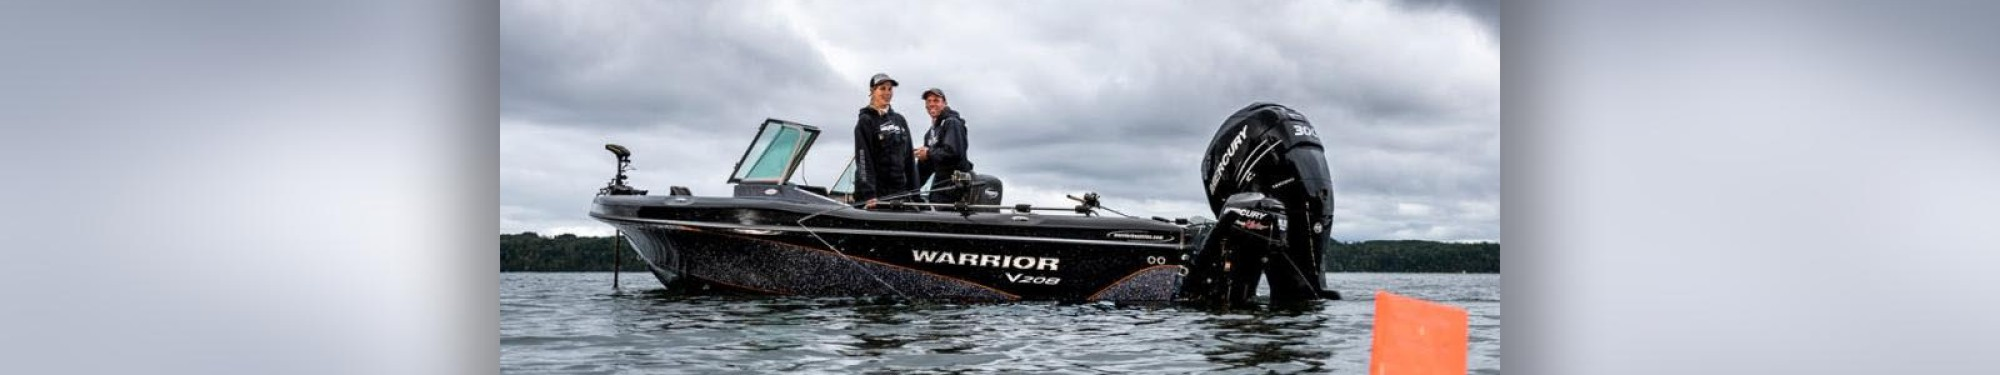 Anchor Marine is your Saskatchewan Warrior Boat dealer! Stop by today!